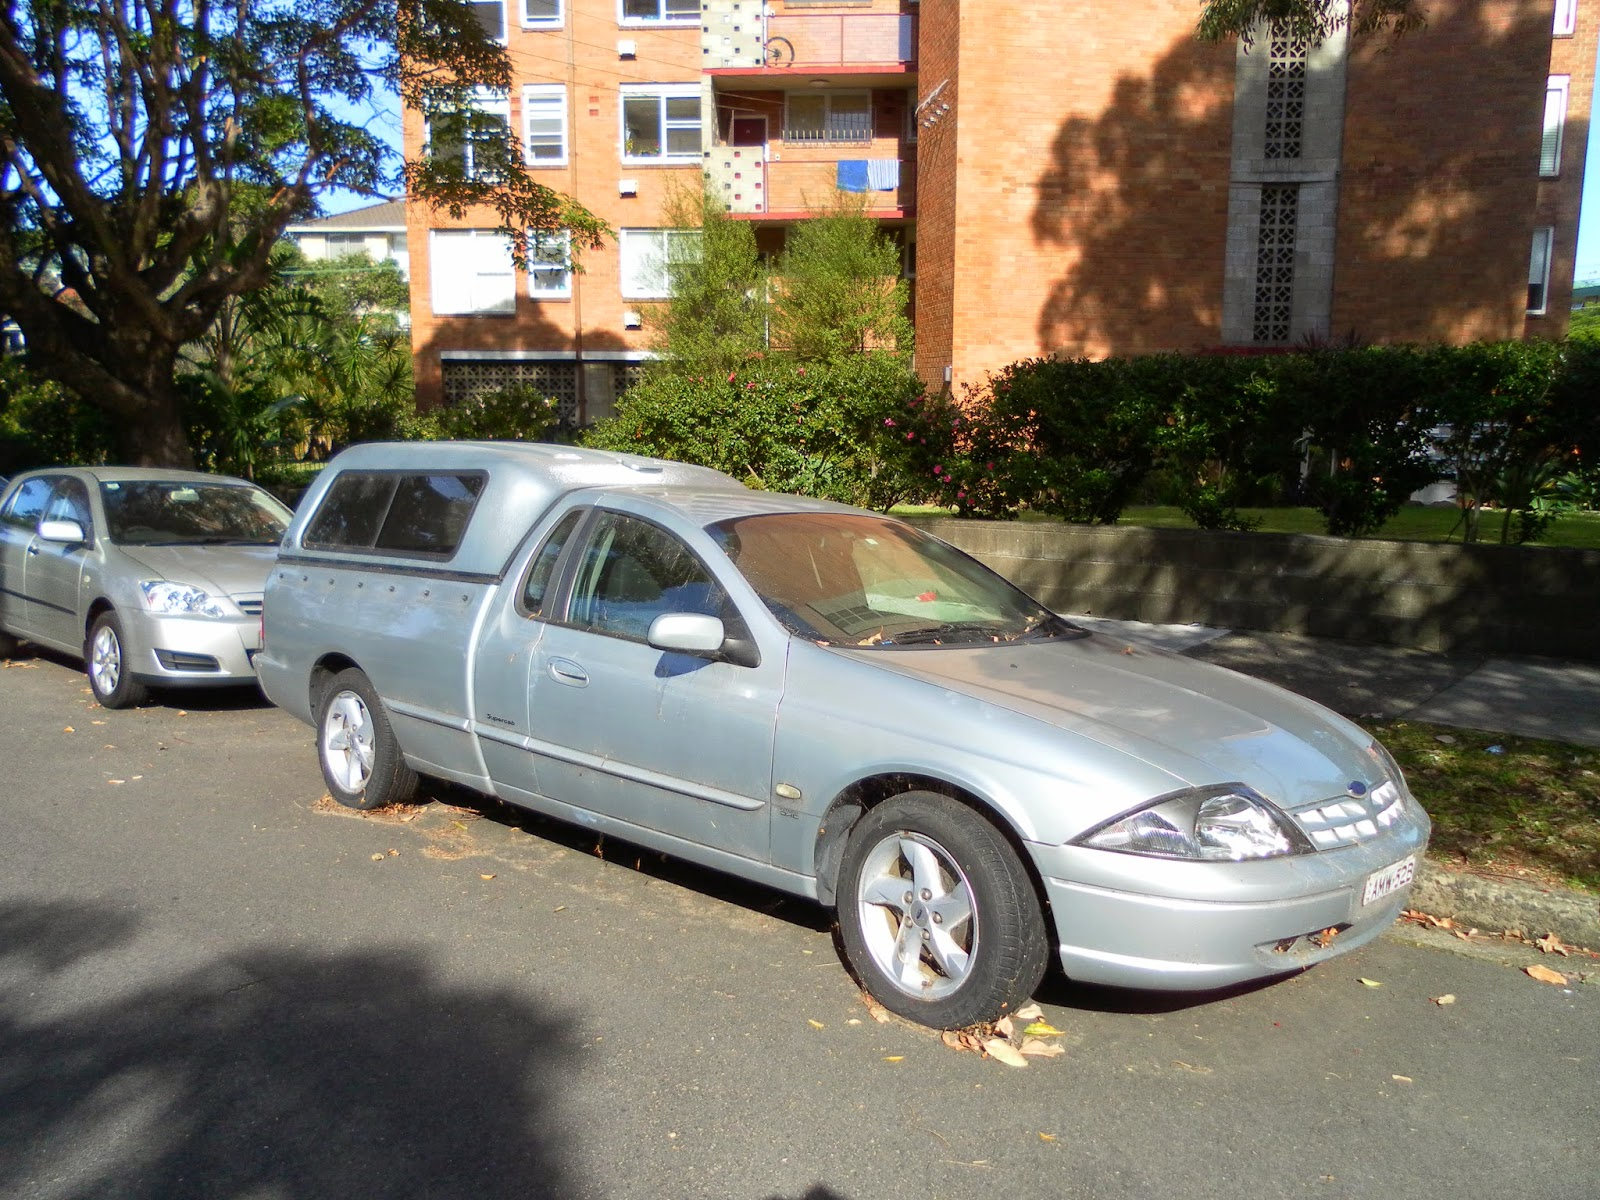 2002 Ford BA Falcon XLS Ute + Challenge Flexiglass canopy & Aussie Old Parked Cars: 2002 Ford BA Falcon XLS Ute + Challenge ...